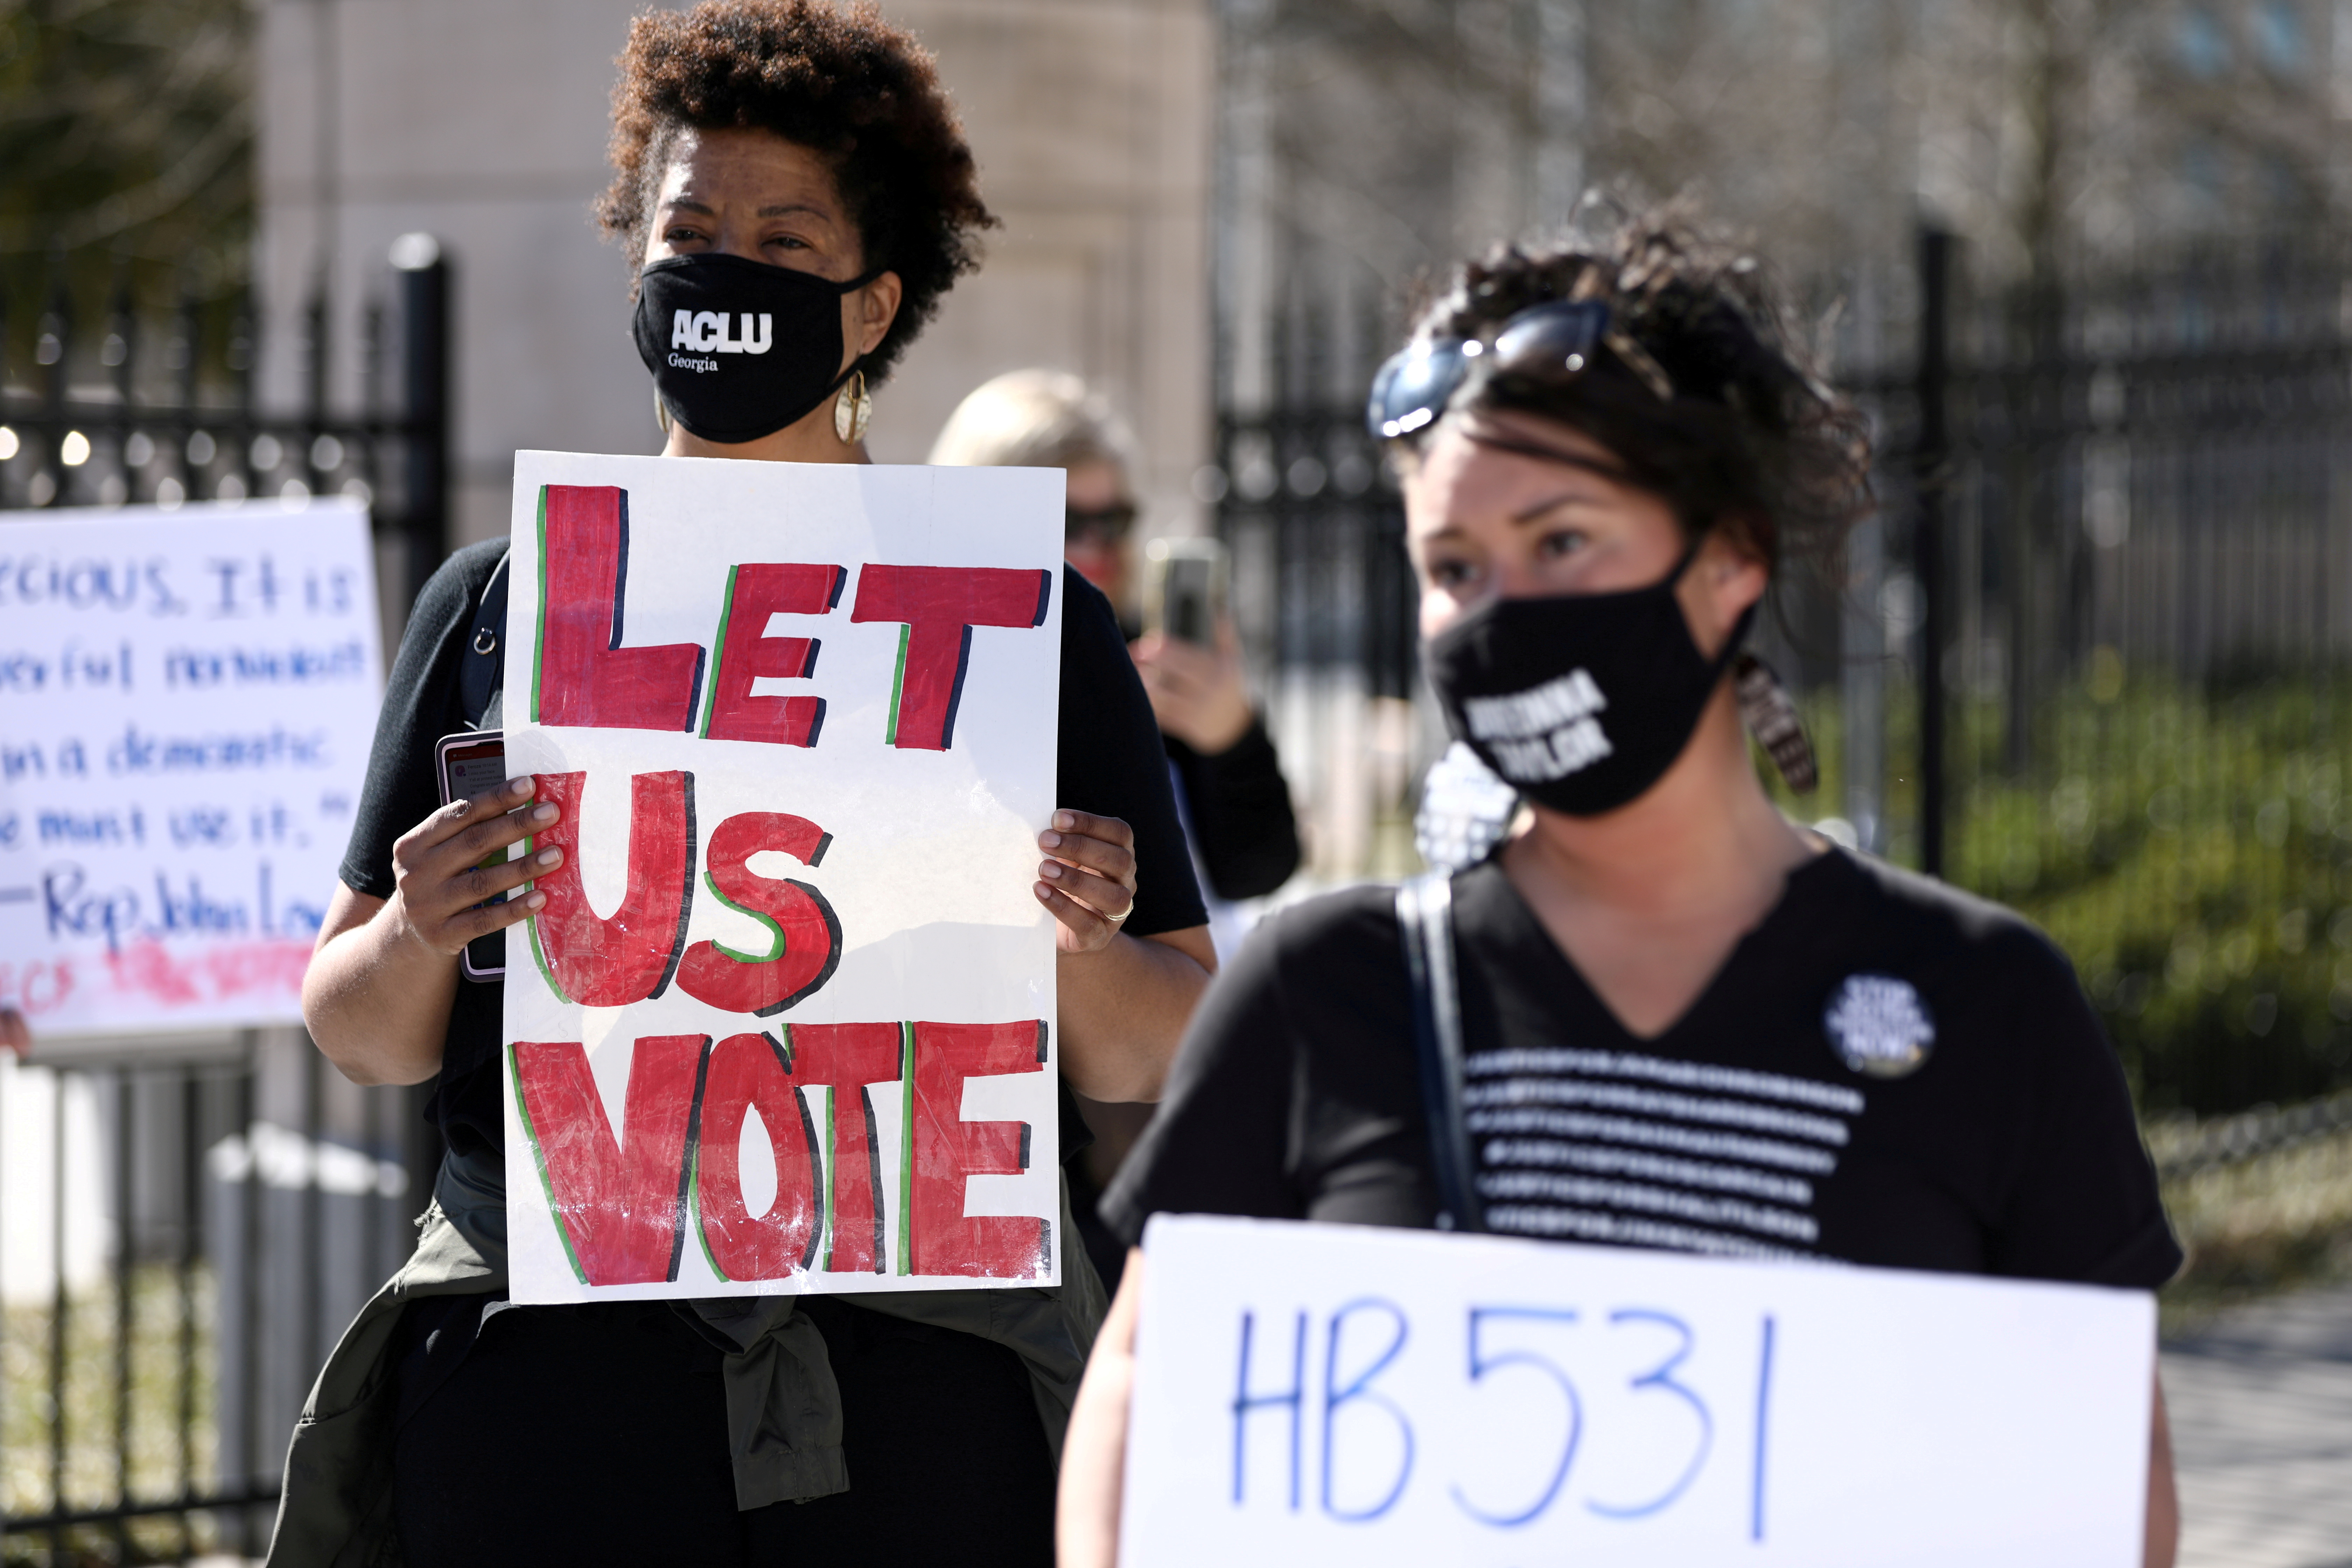 Protesters gather outside of the Georgia State Capitol to protest HB 531, which would place tougher restrictions on voting in Georgia, in Atlanta, Georgia, U.S. March 4, 2021. REUTERS/Dustin Chambers/File Photo/File Photo